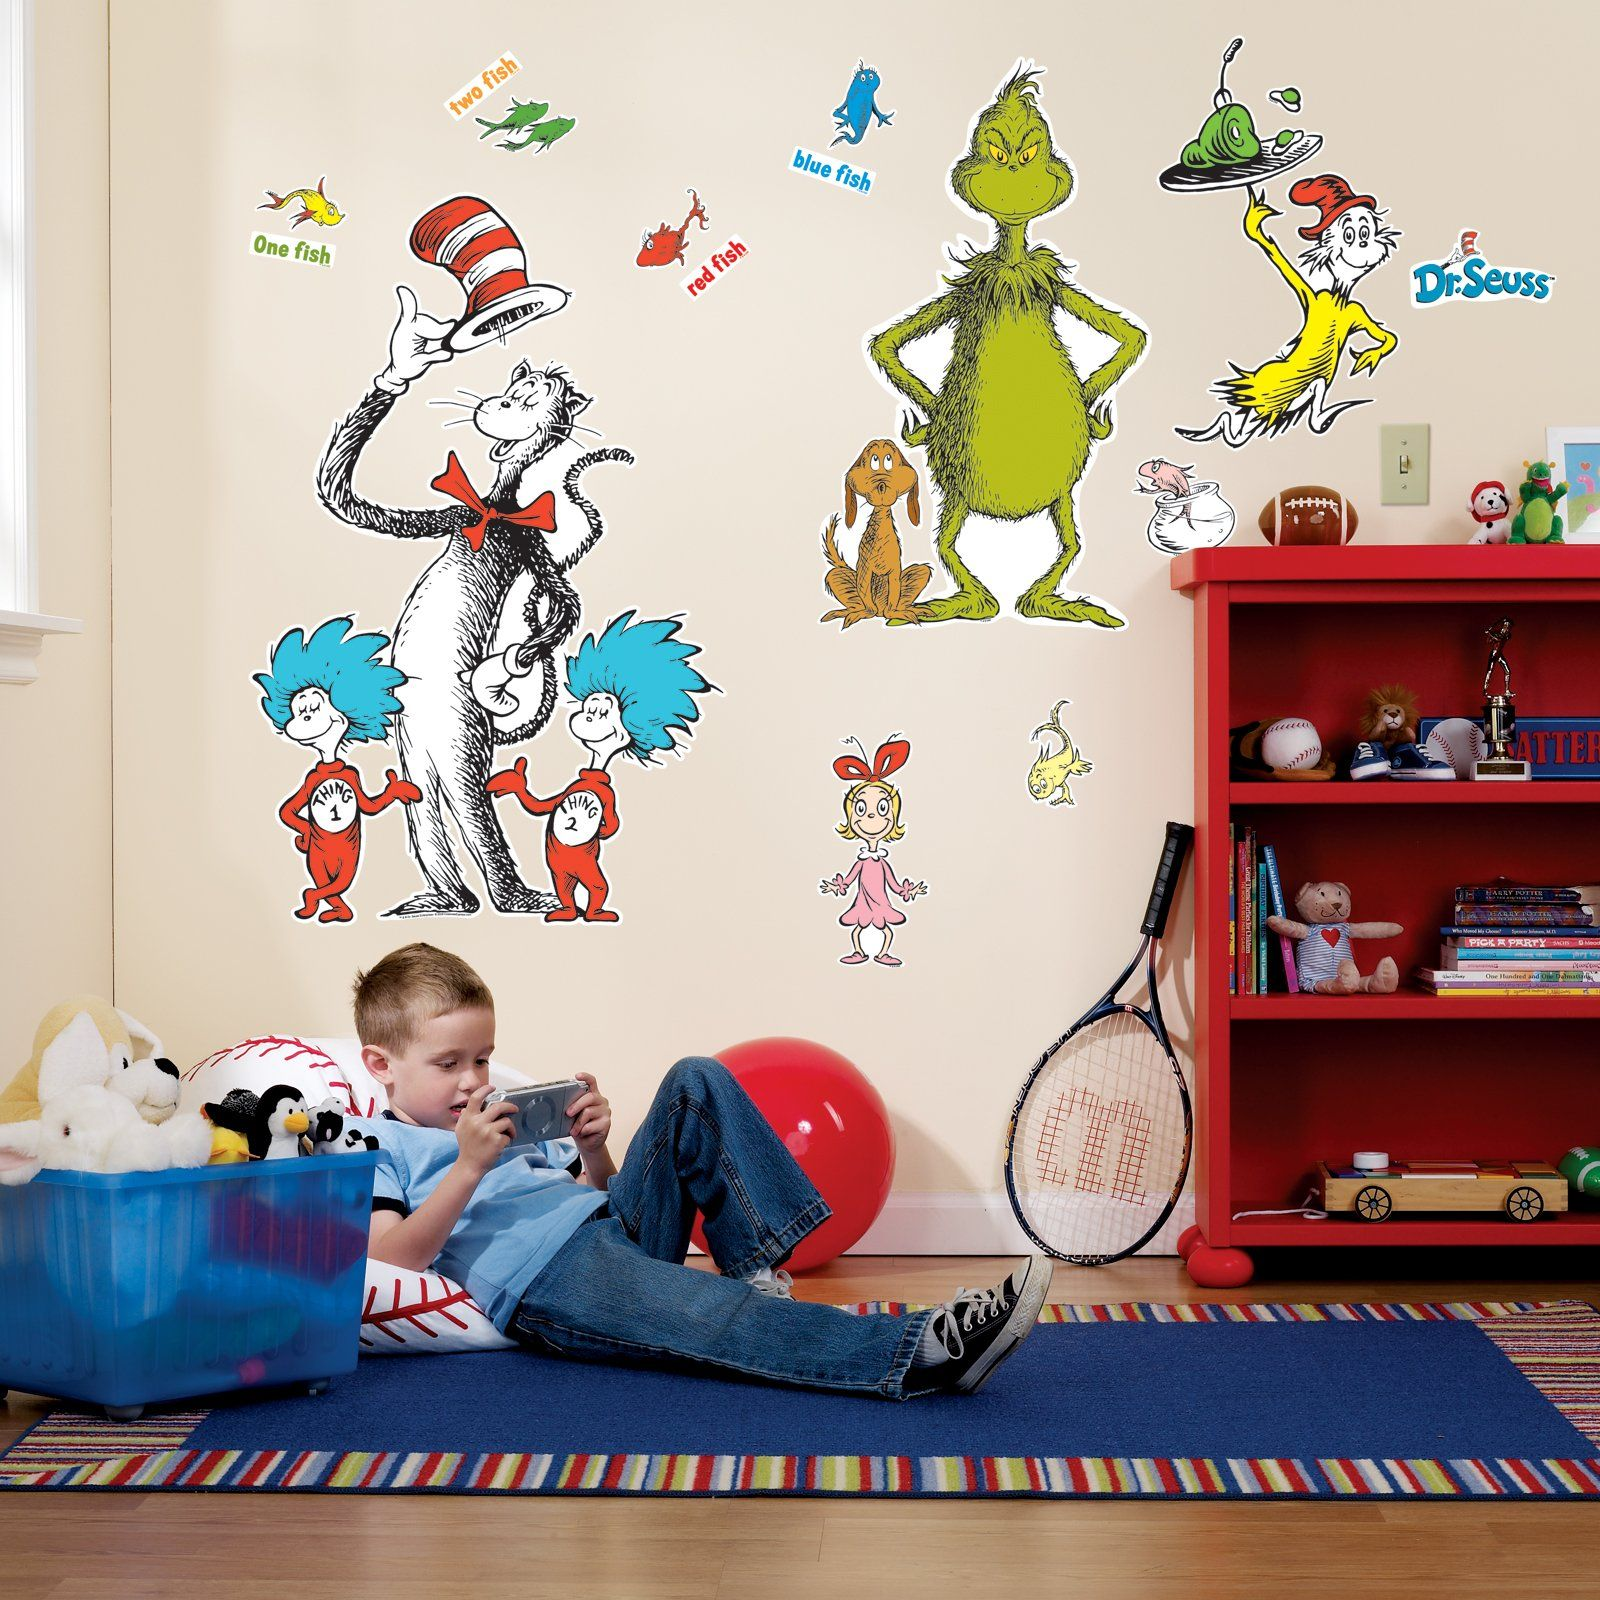 Dr Seuss Giant Wall Decals Dr Seuss Wall Decals Big Wall Stickers Kids Wall Decals